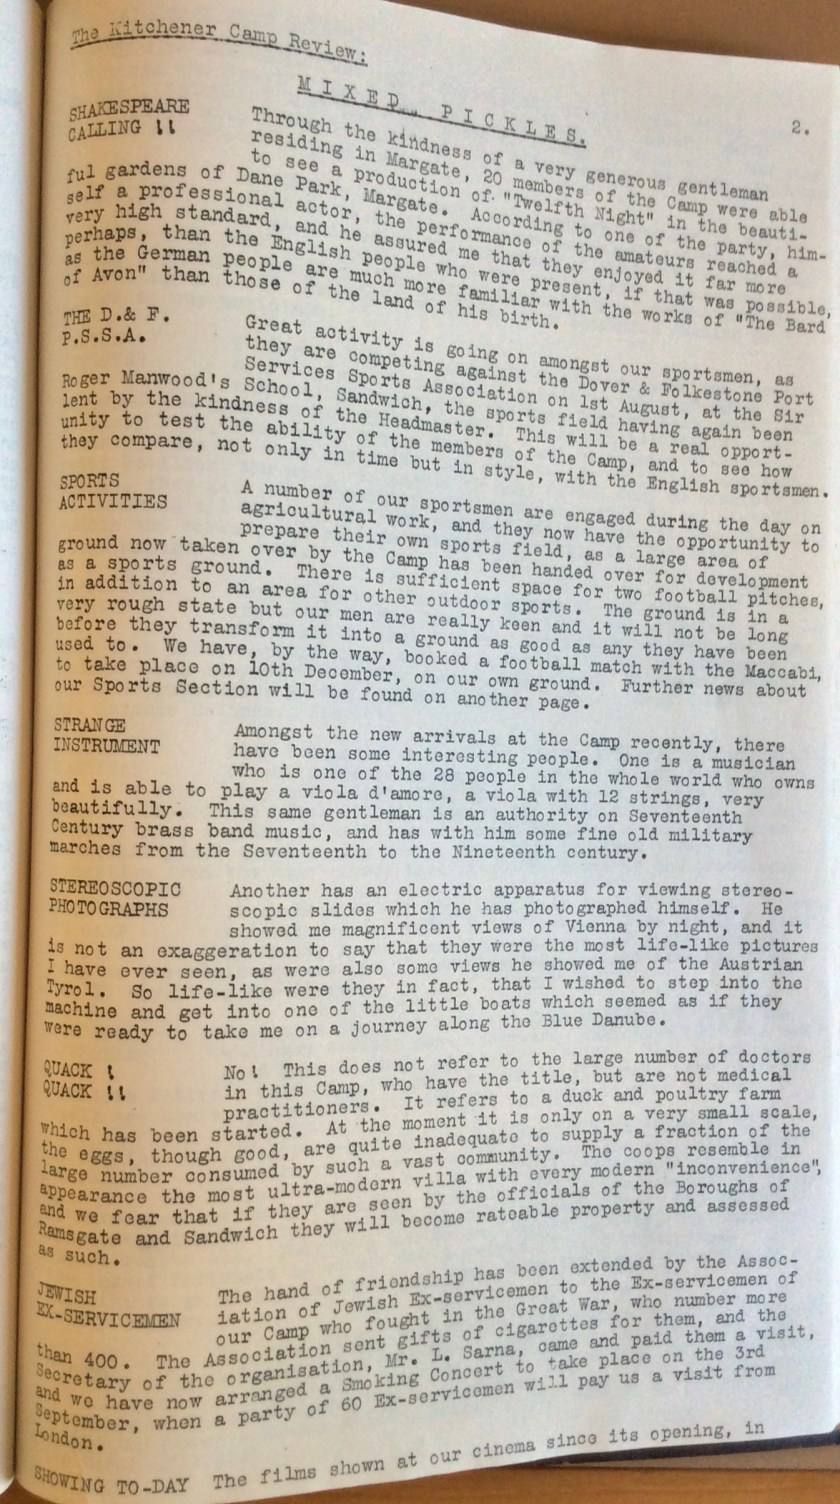 The Kitchener Camp Review, August 1939, page 2